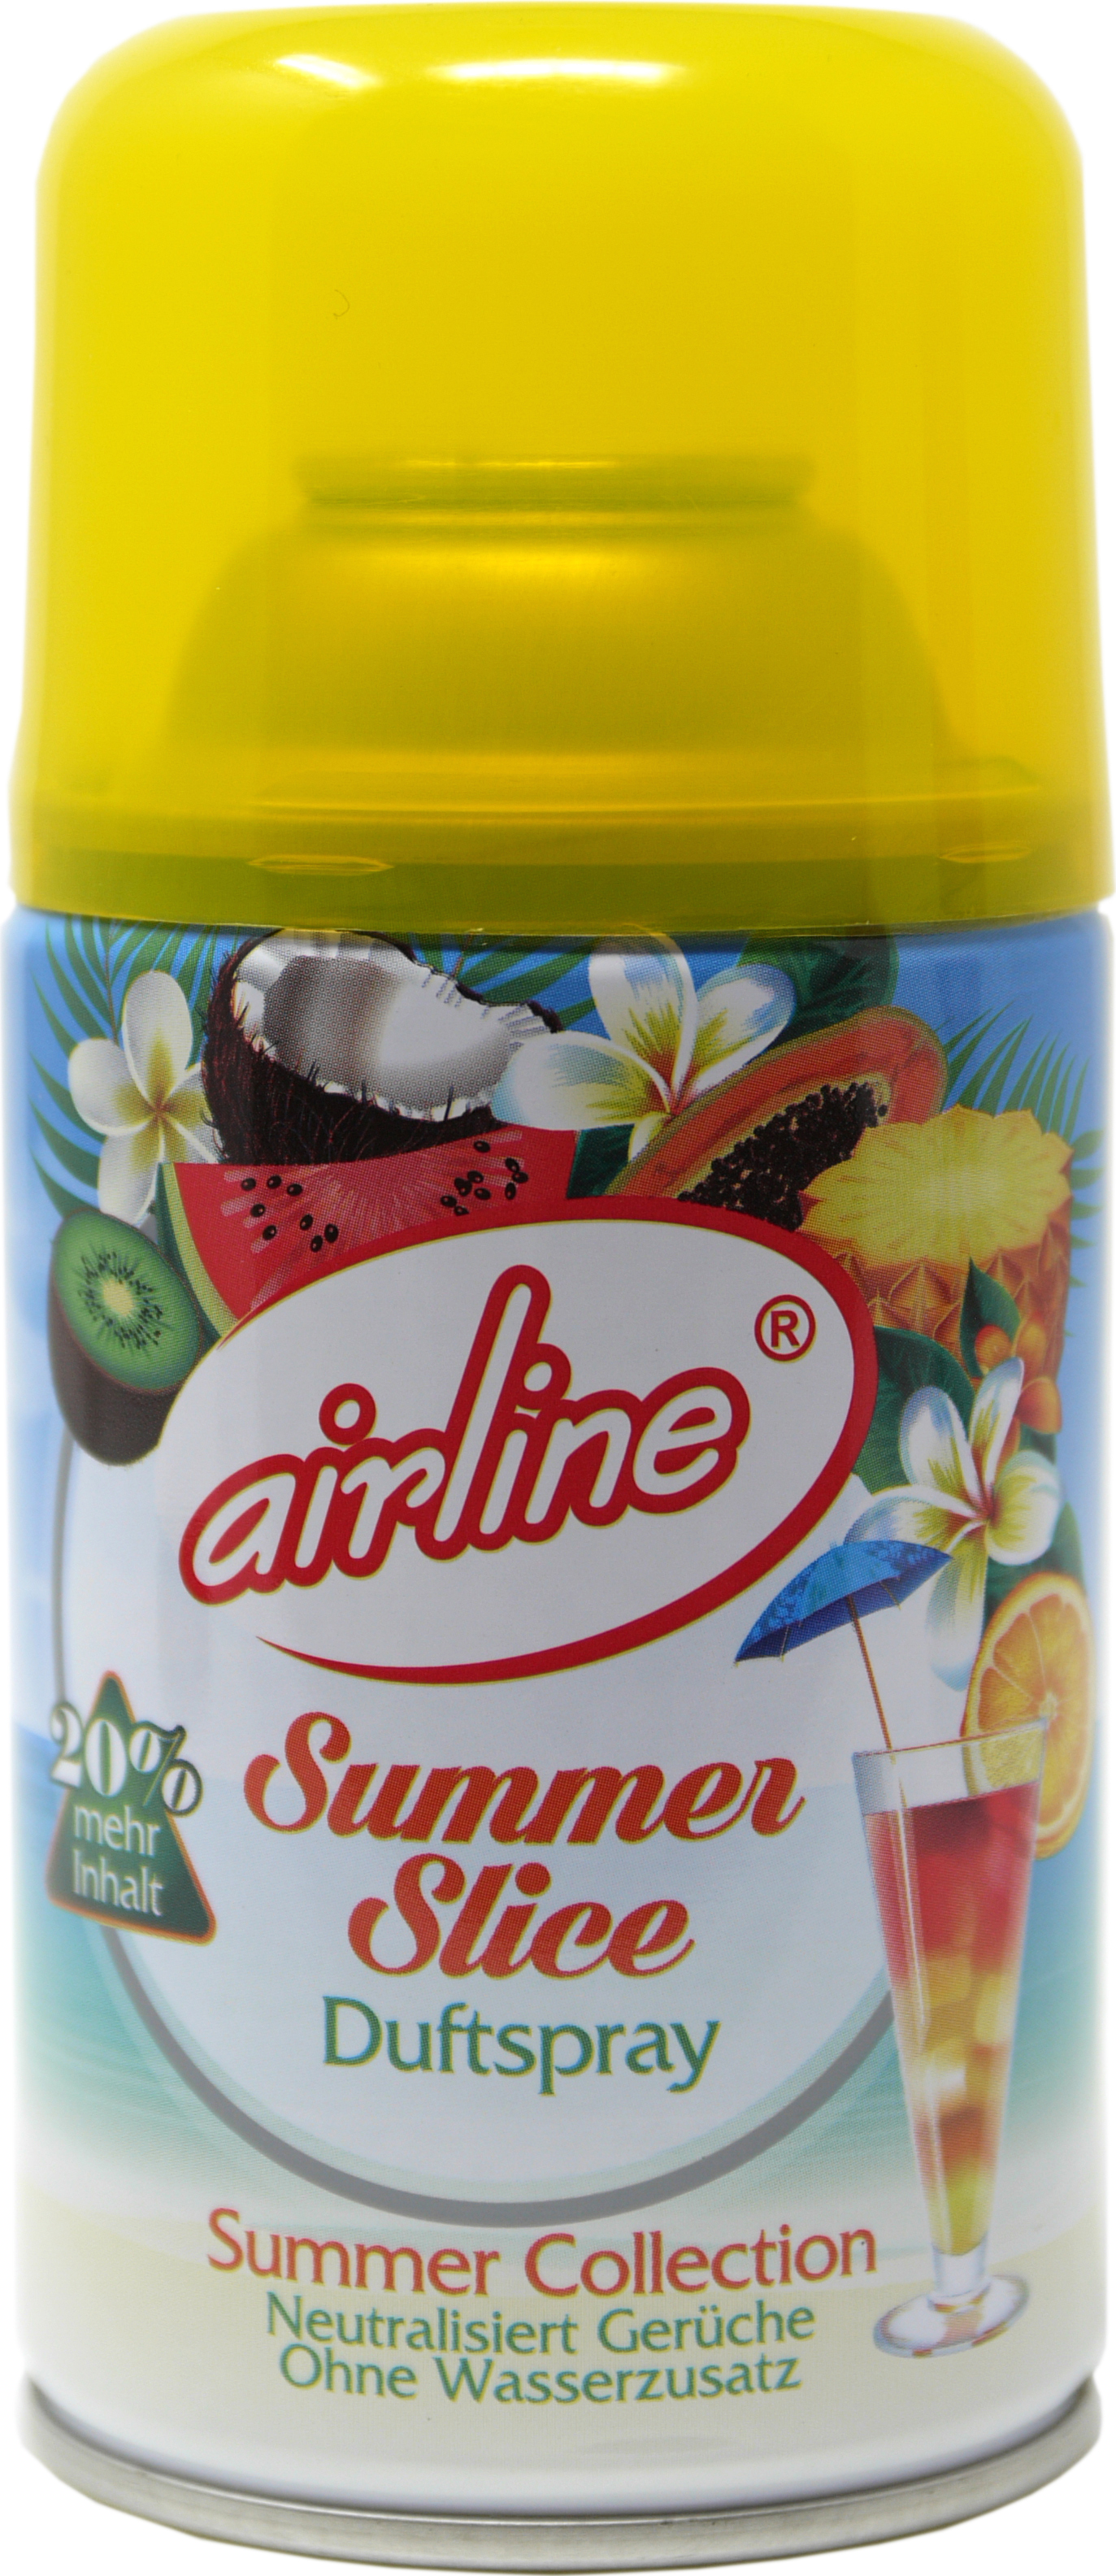 00530 - airline Summer Collection Summer Slice Nachfüllkartusche 300 ml